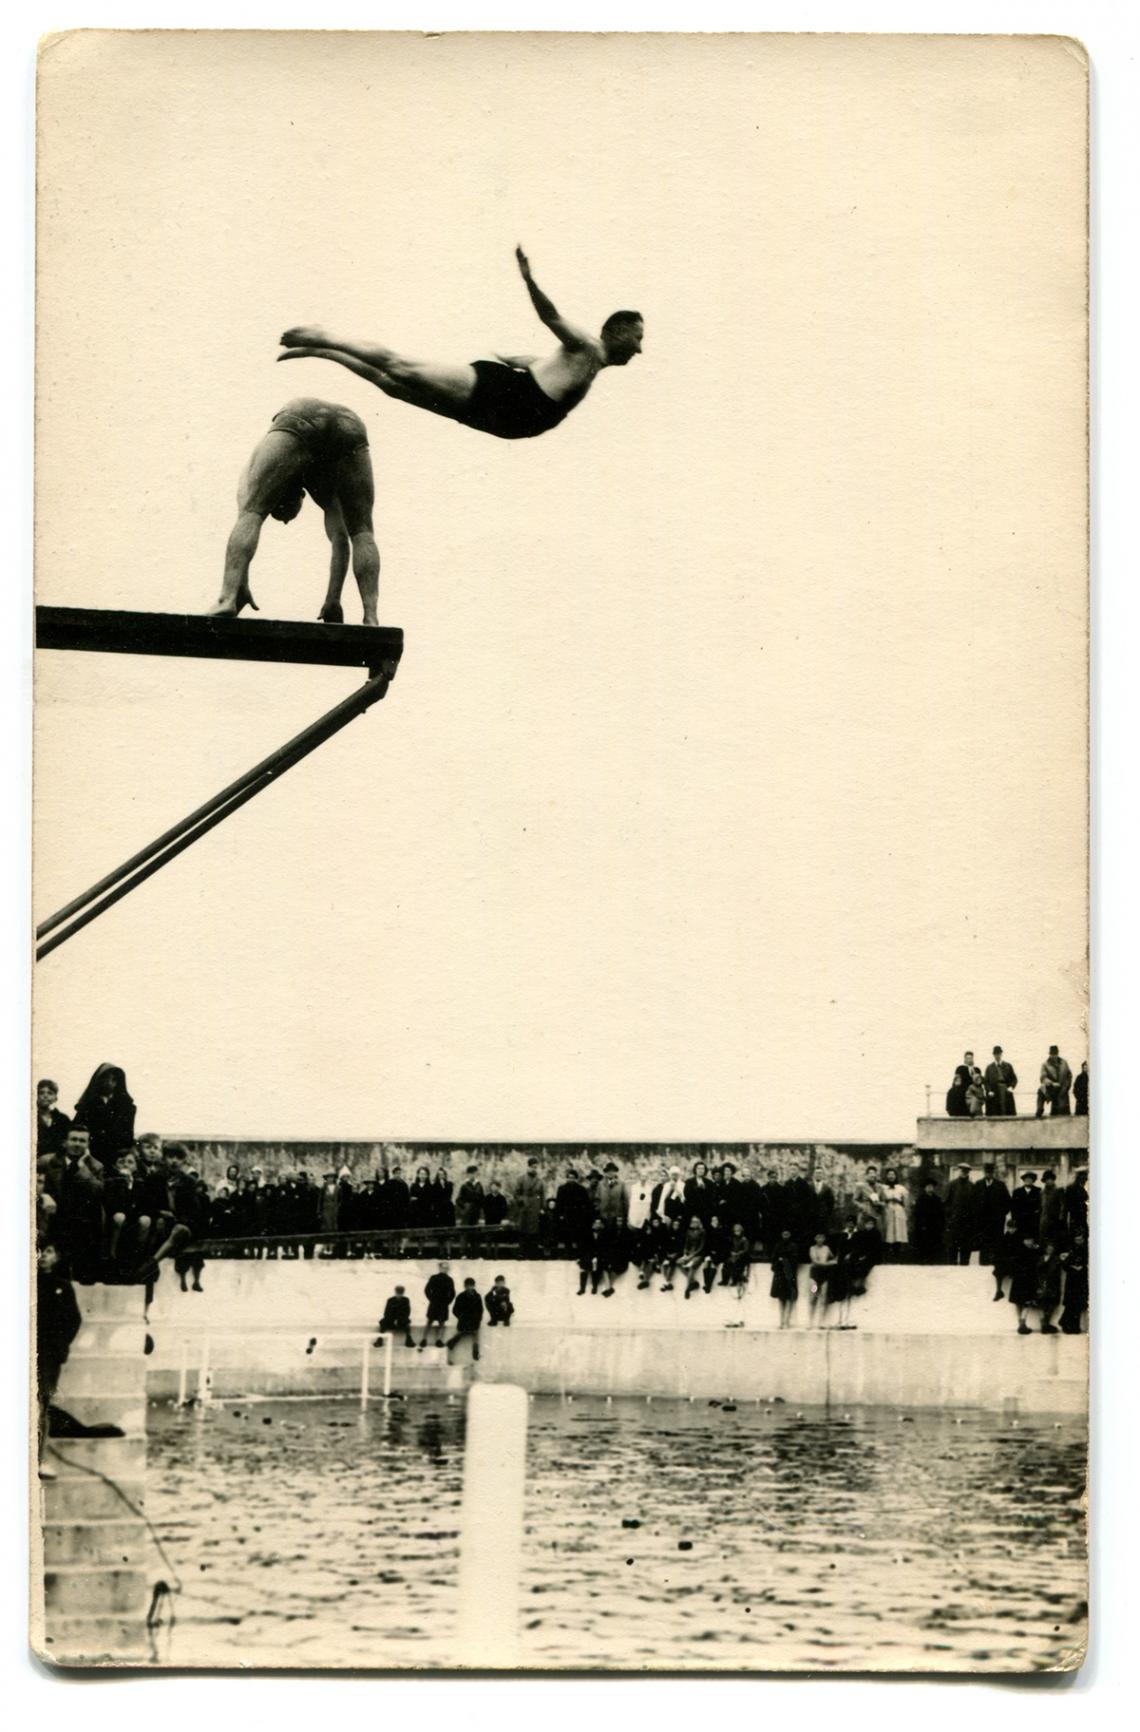 Jubilee Pool reopening after the war